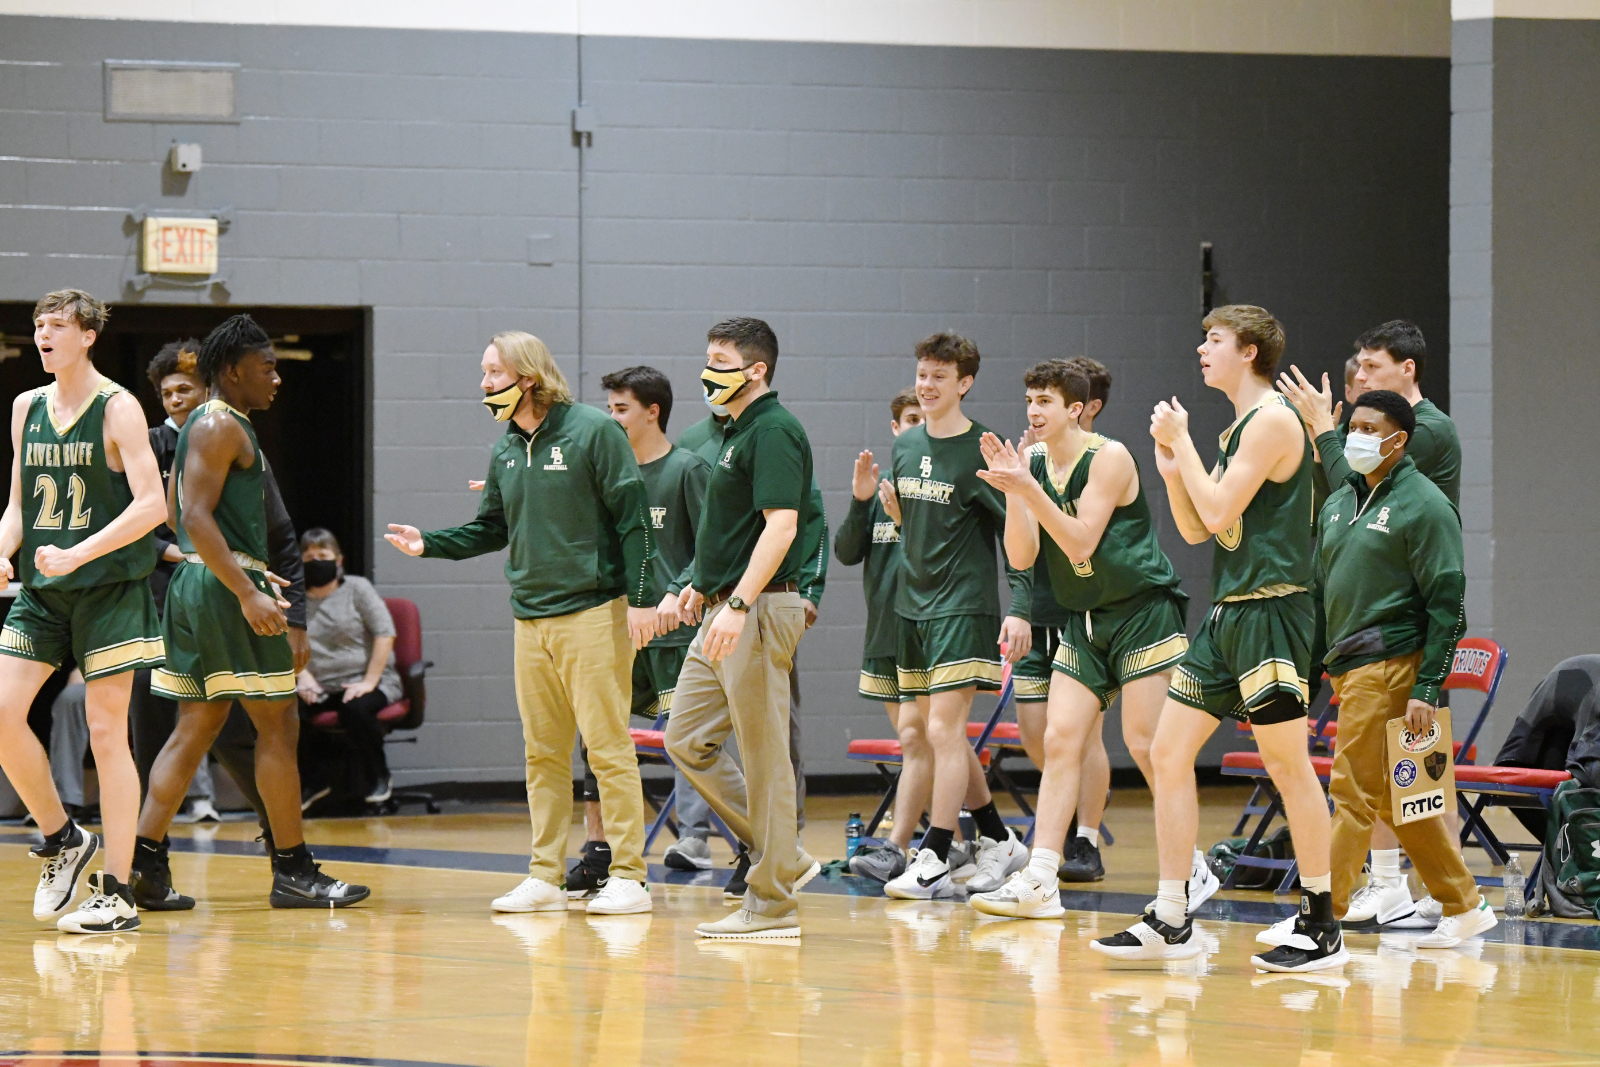 Photo Gallery: Men's Varsity Basketball 2020-21 Playoff Run – Round 2 vs Carolina Forest